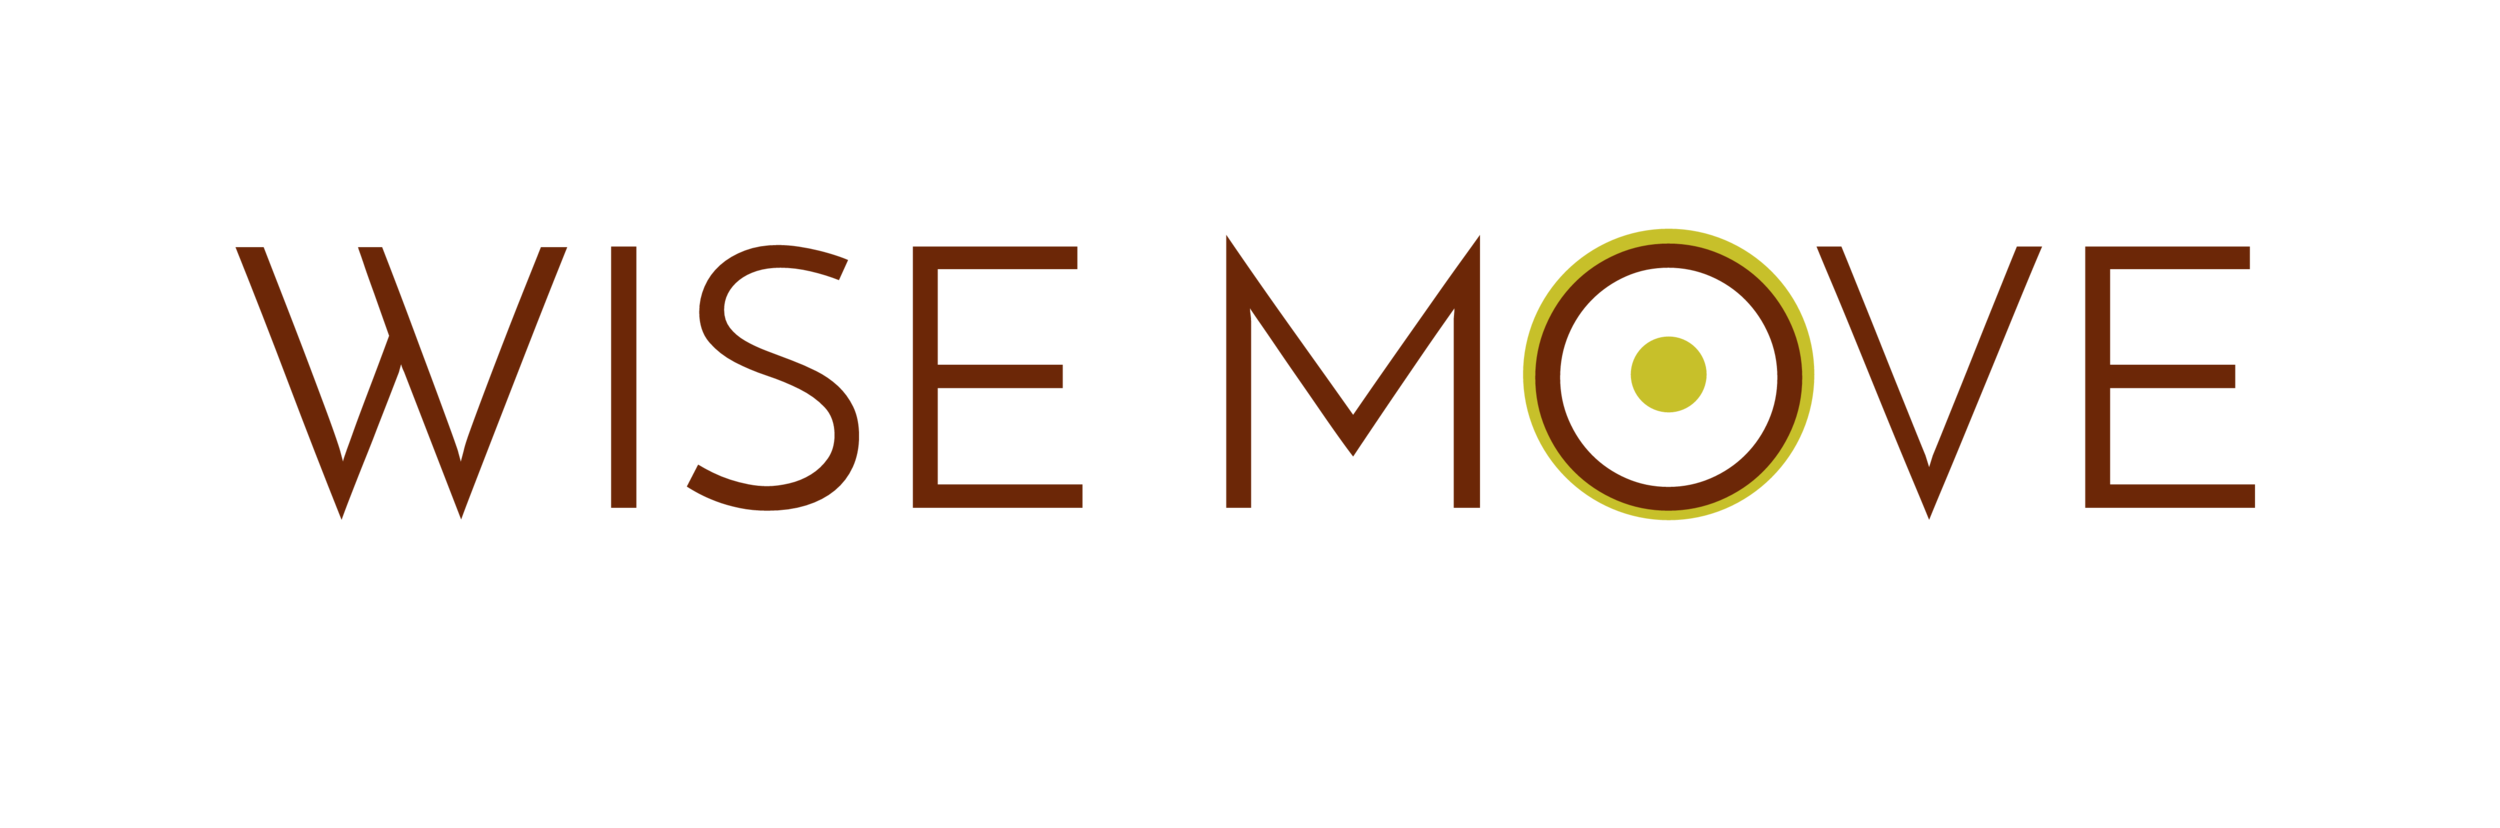 WISE MOVE-logo (5).png